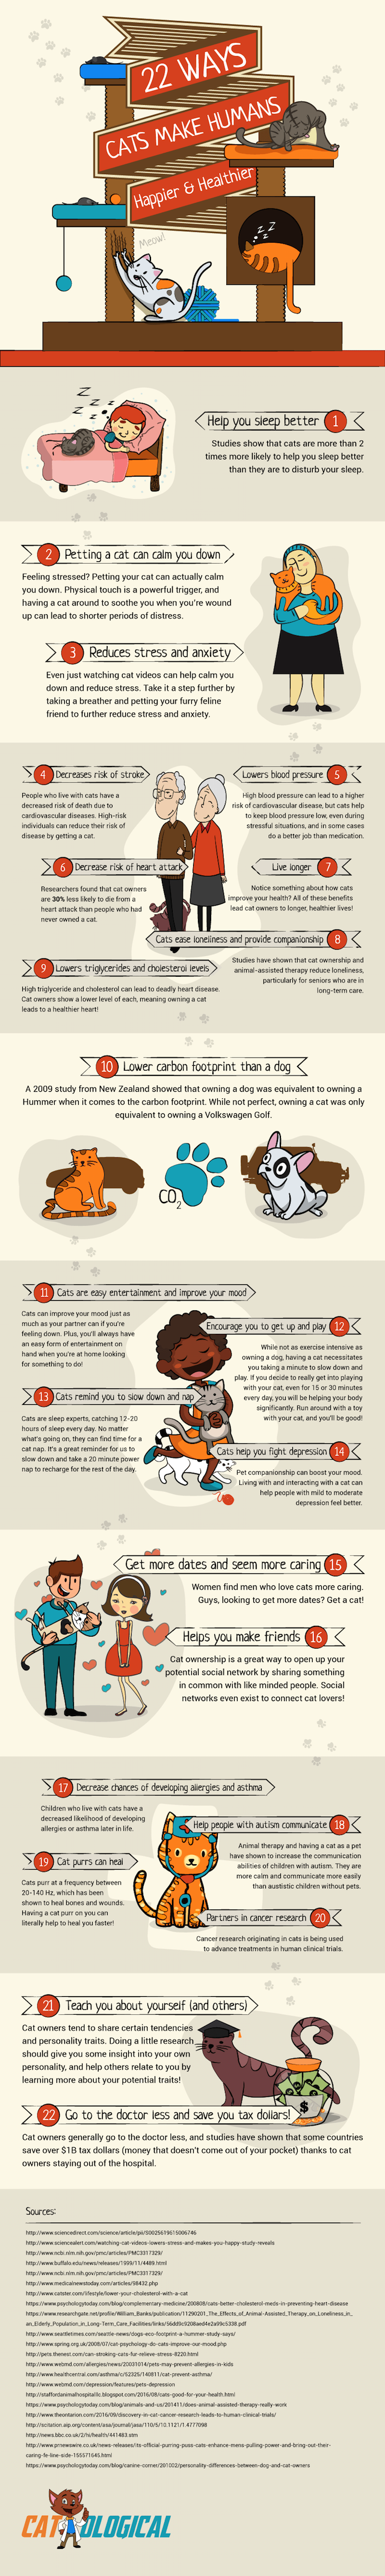 Ways Cats Make Humans Happier